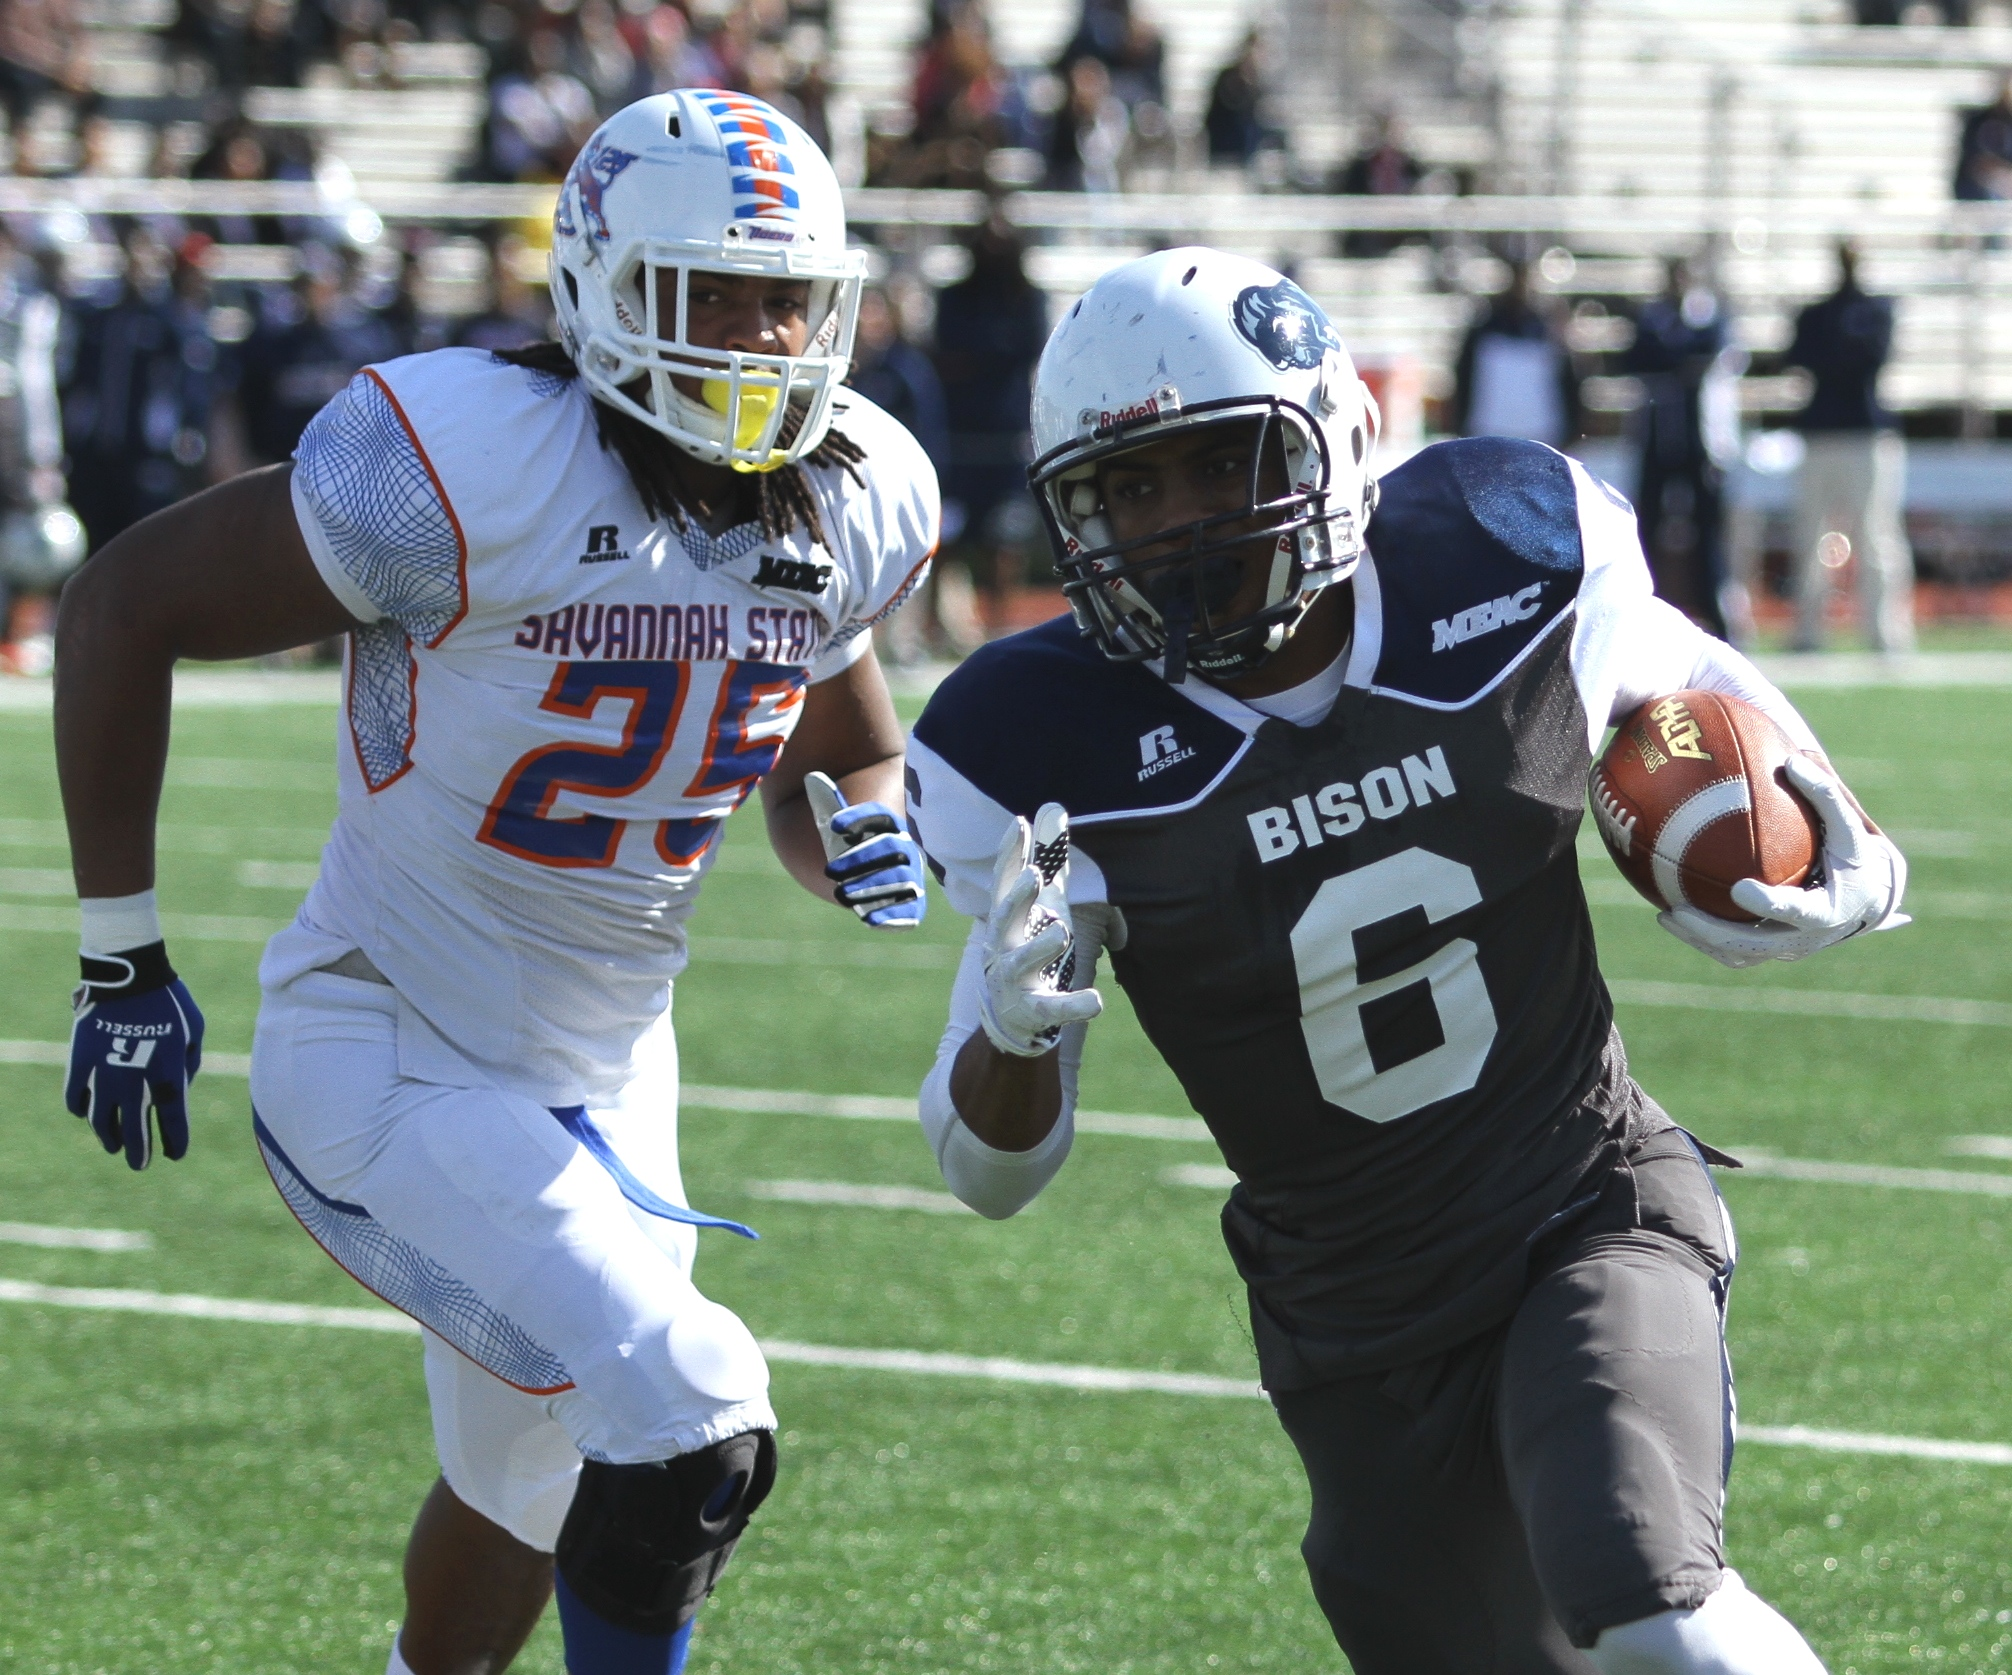 Howard Bison pick up first win of the season agai...